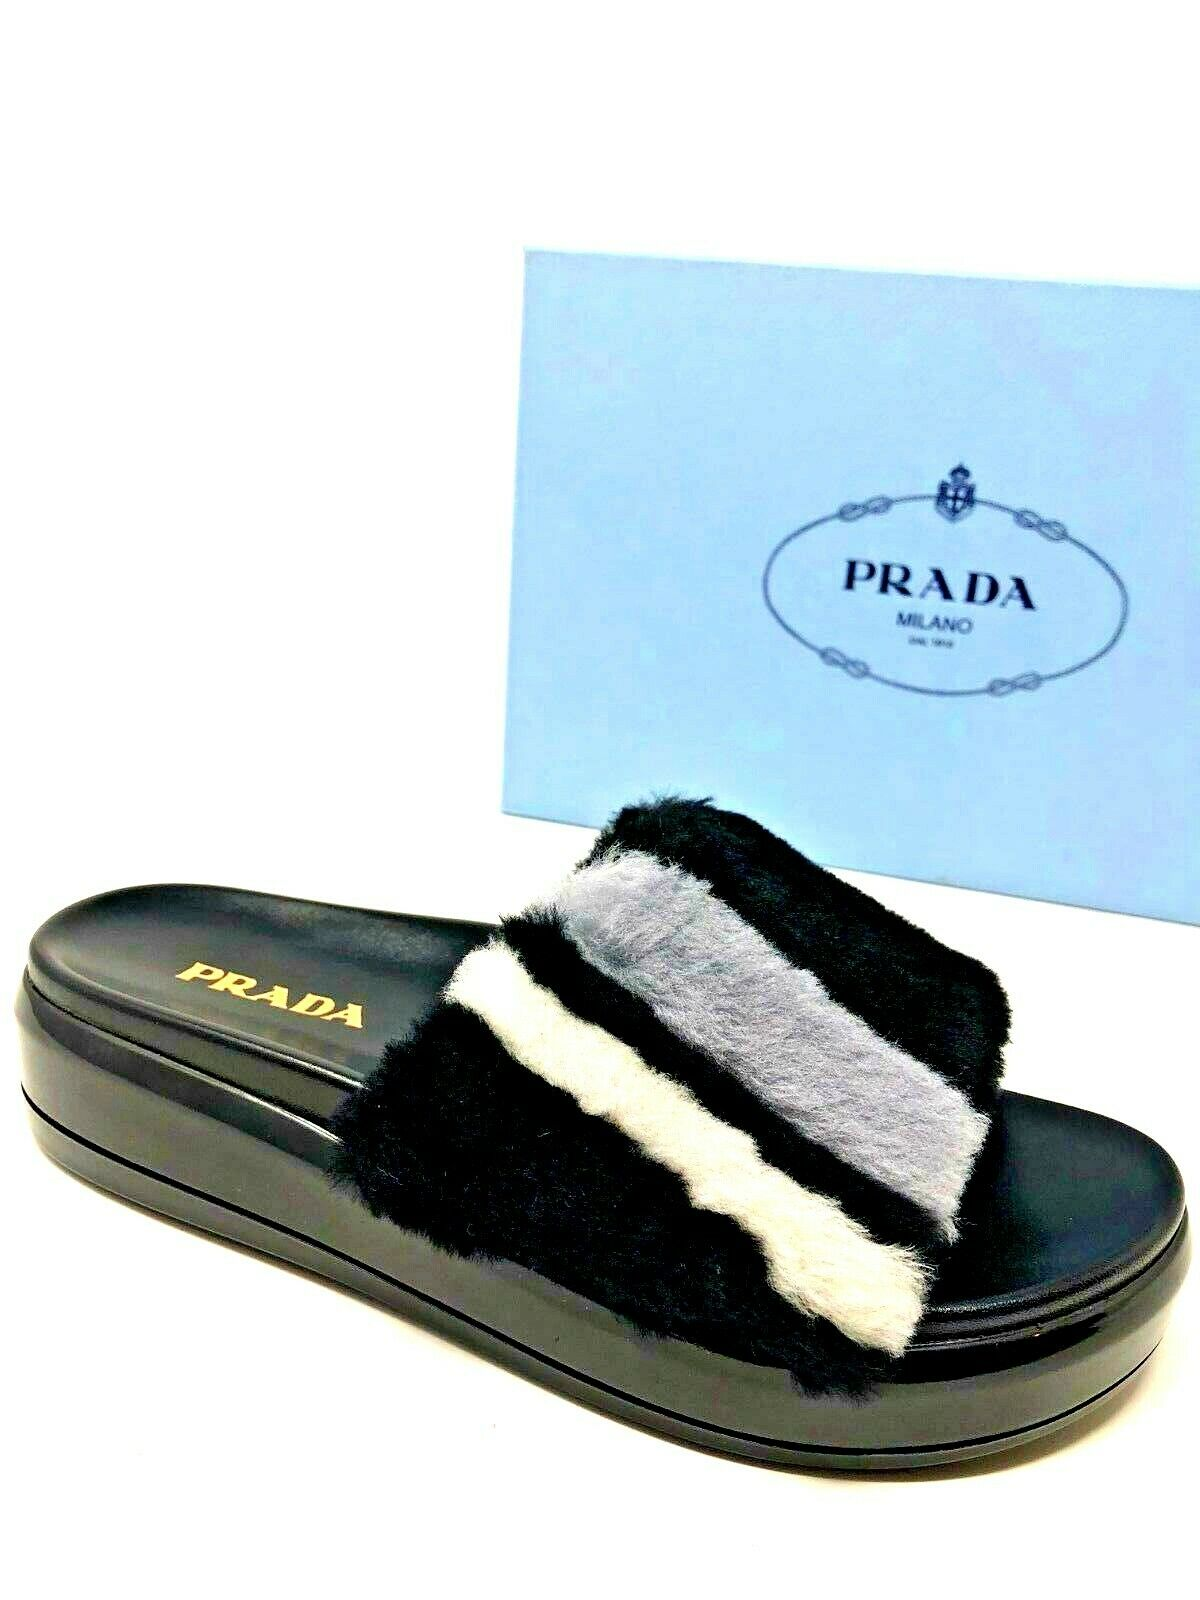 625 New PRADA Womens Fur Slippers Black Slides Ladies shoes Size 6.5 36.5 7 37